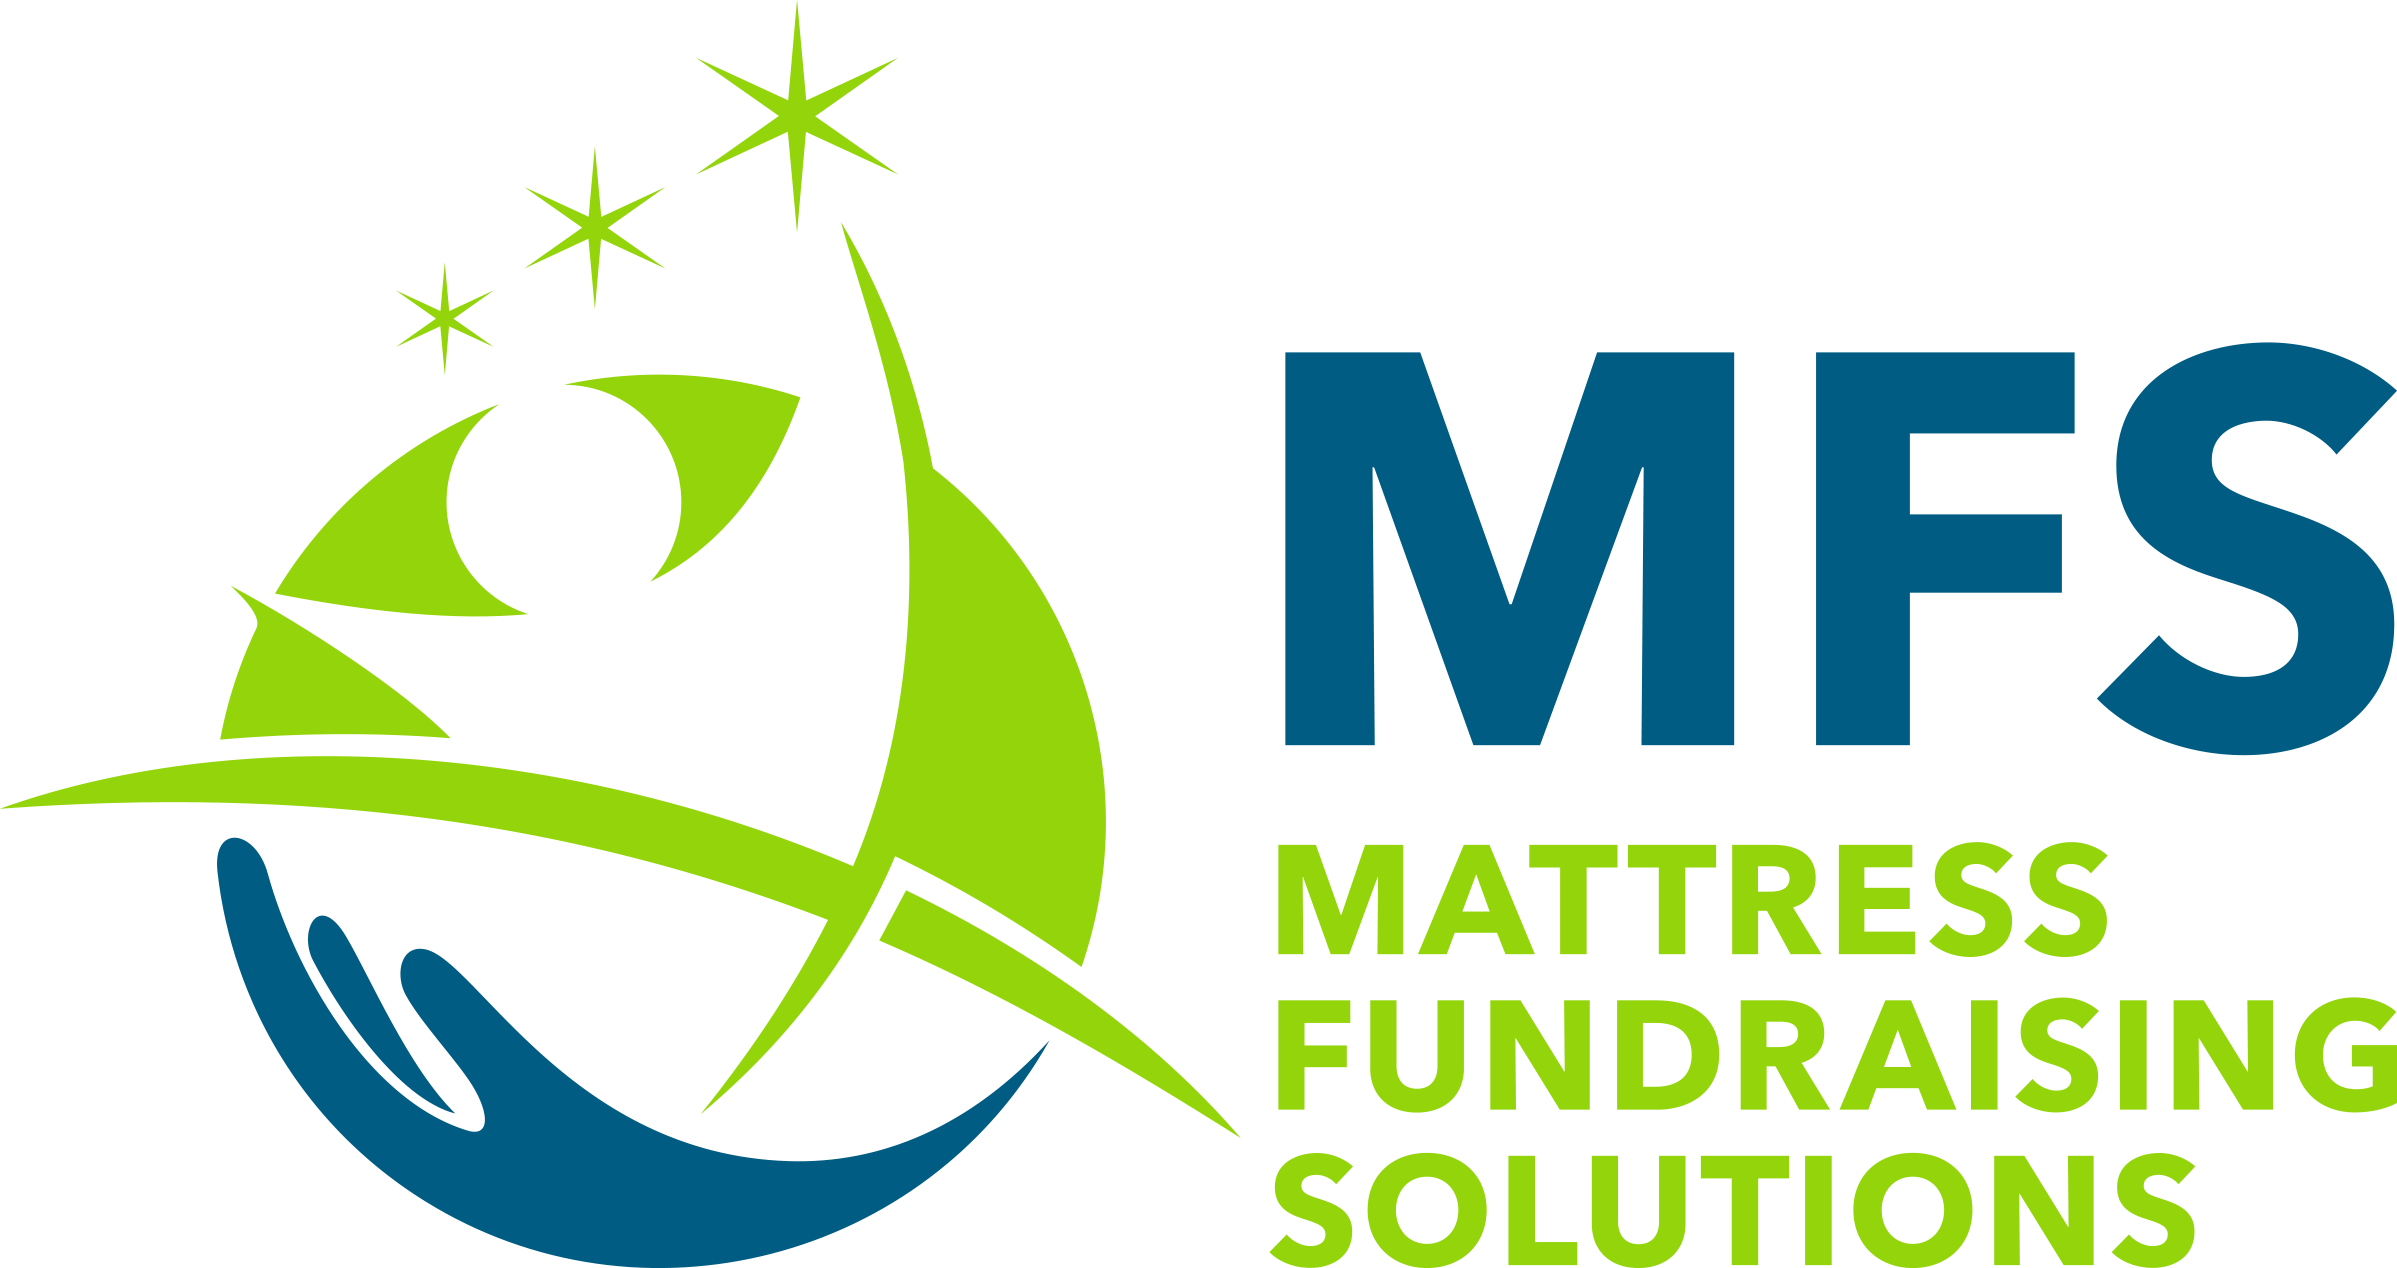 Mattress Fundraising Solutions